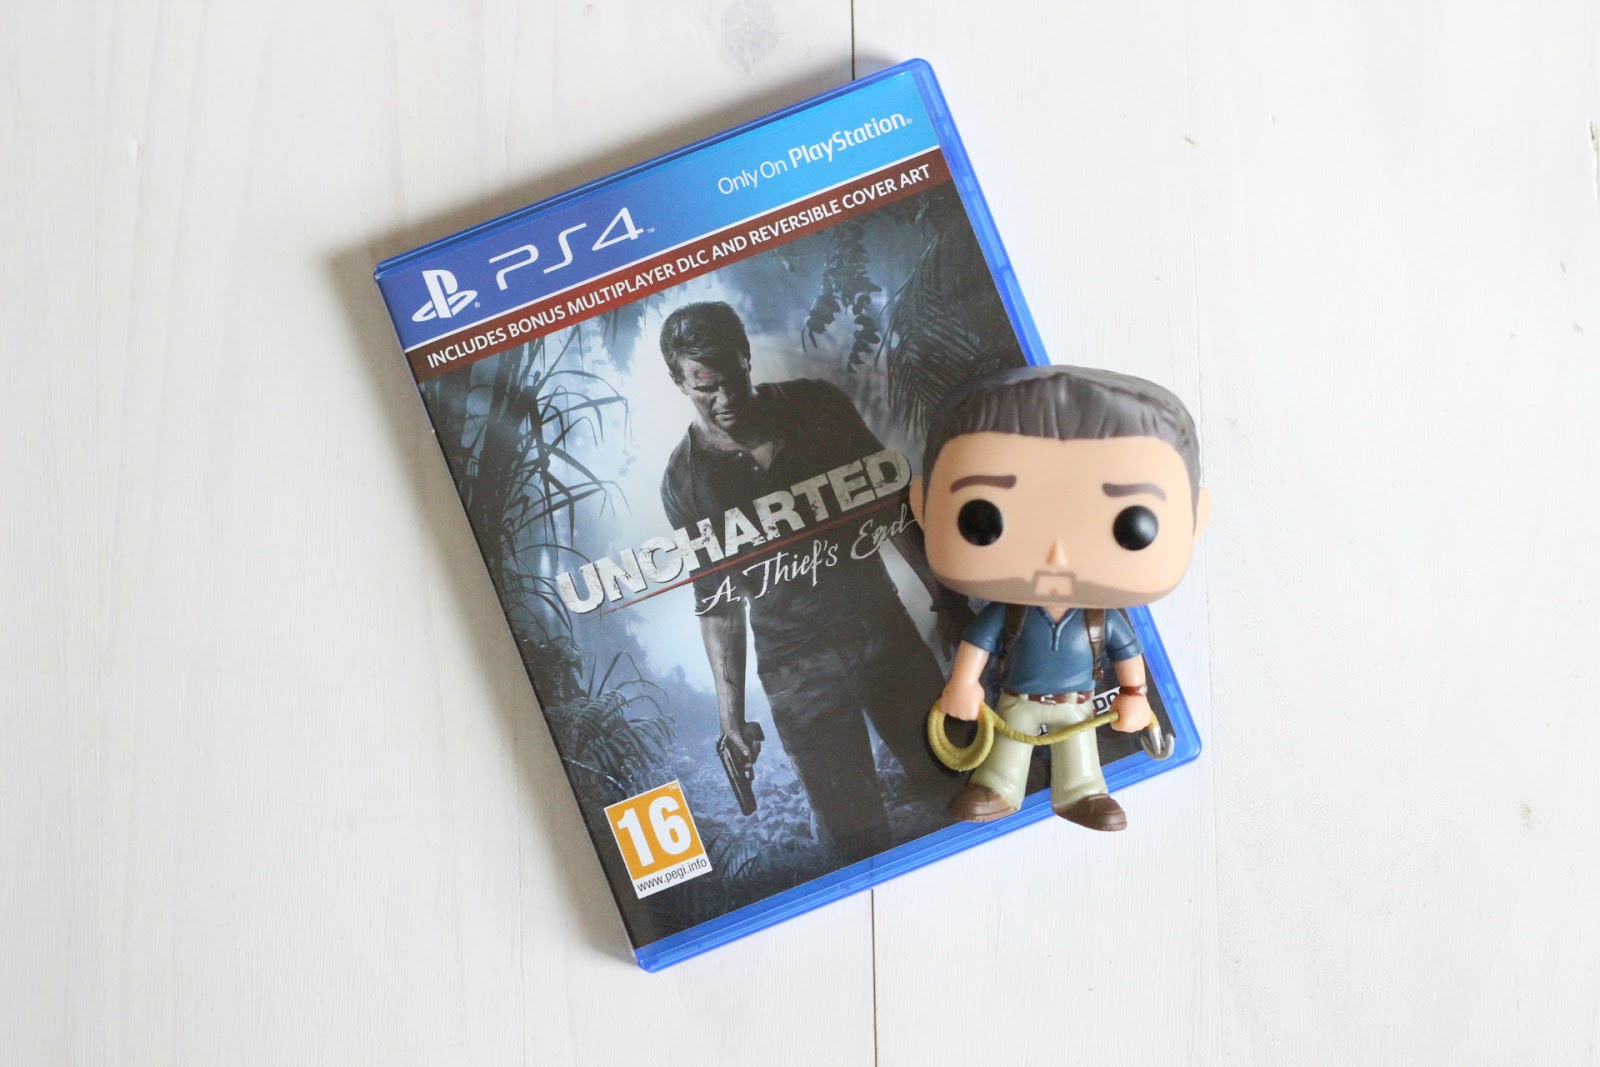 uncharted 4 game and funko pop vinyl